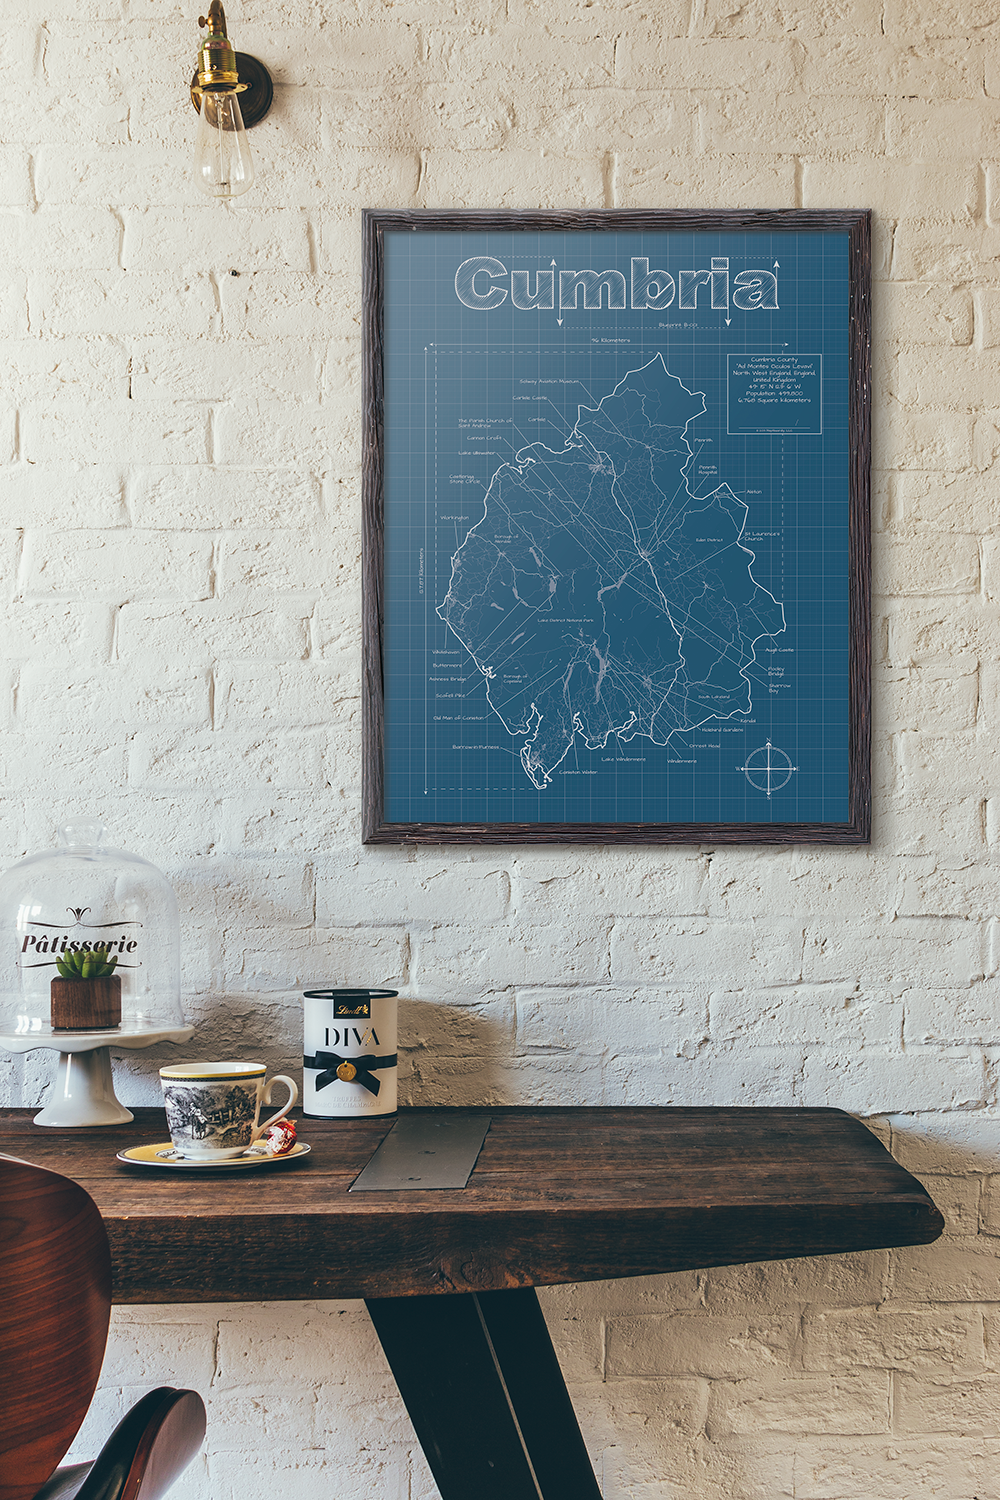 County of Cumbria Blueprint